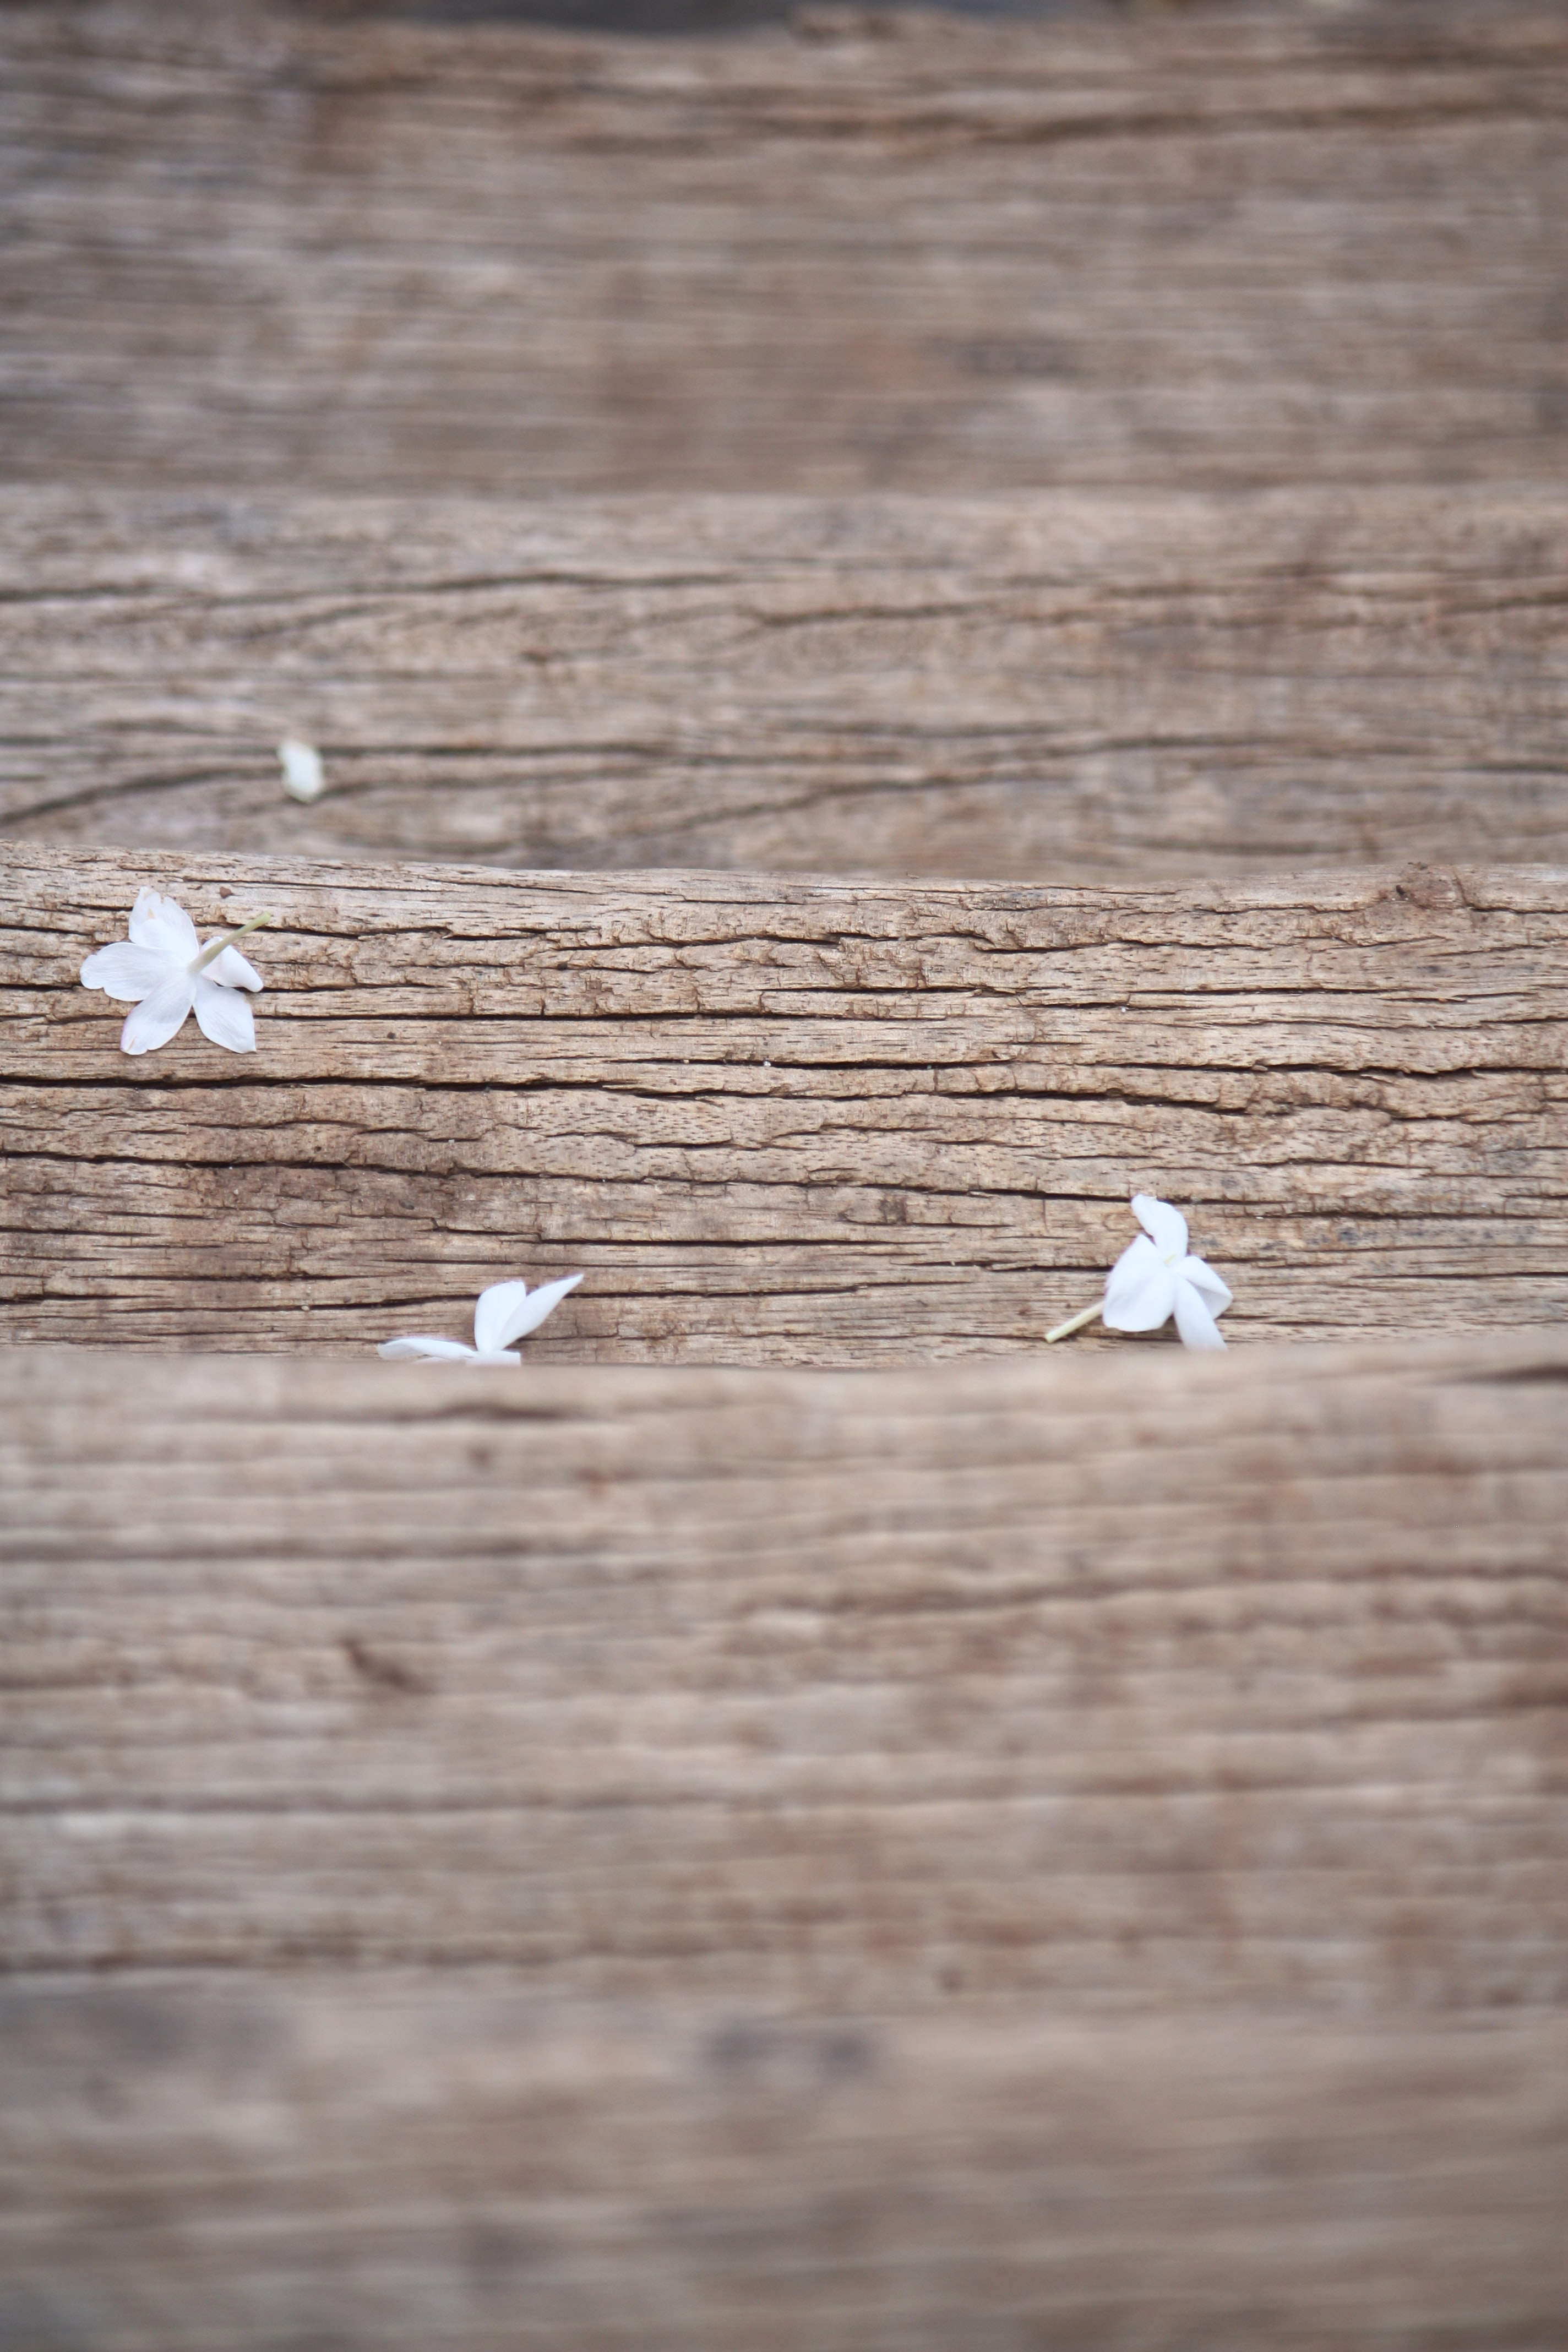 Small fallen flowers on a wooden step